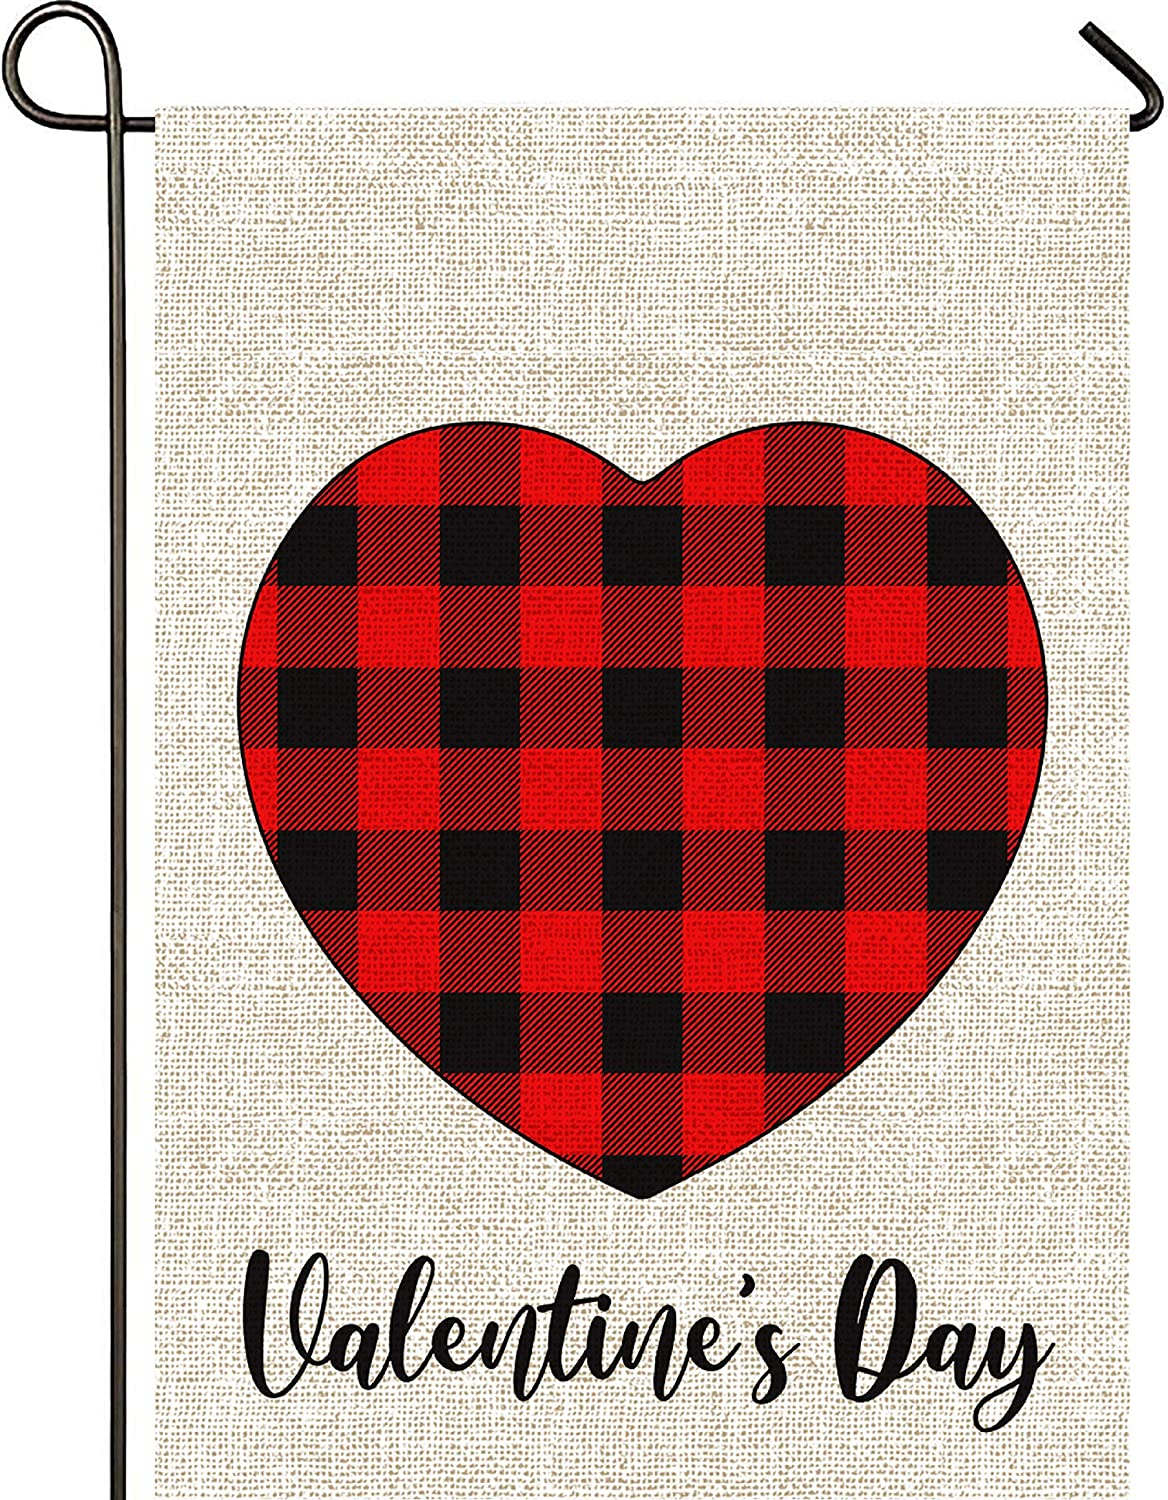 Mogarden Valentine's Day Garden Flag, Double Sided, 12.5 x 18 Inches, Red Black Heart Buffalo Check Plaid Thick Weatherproof Burlap Yard Flag